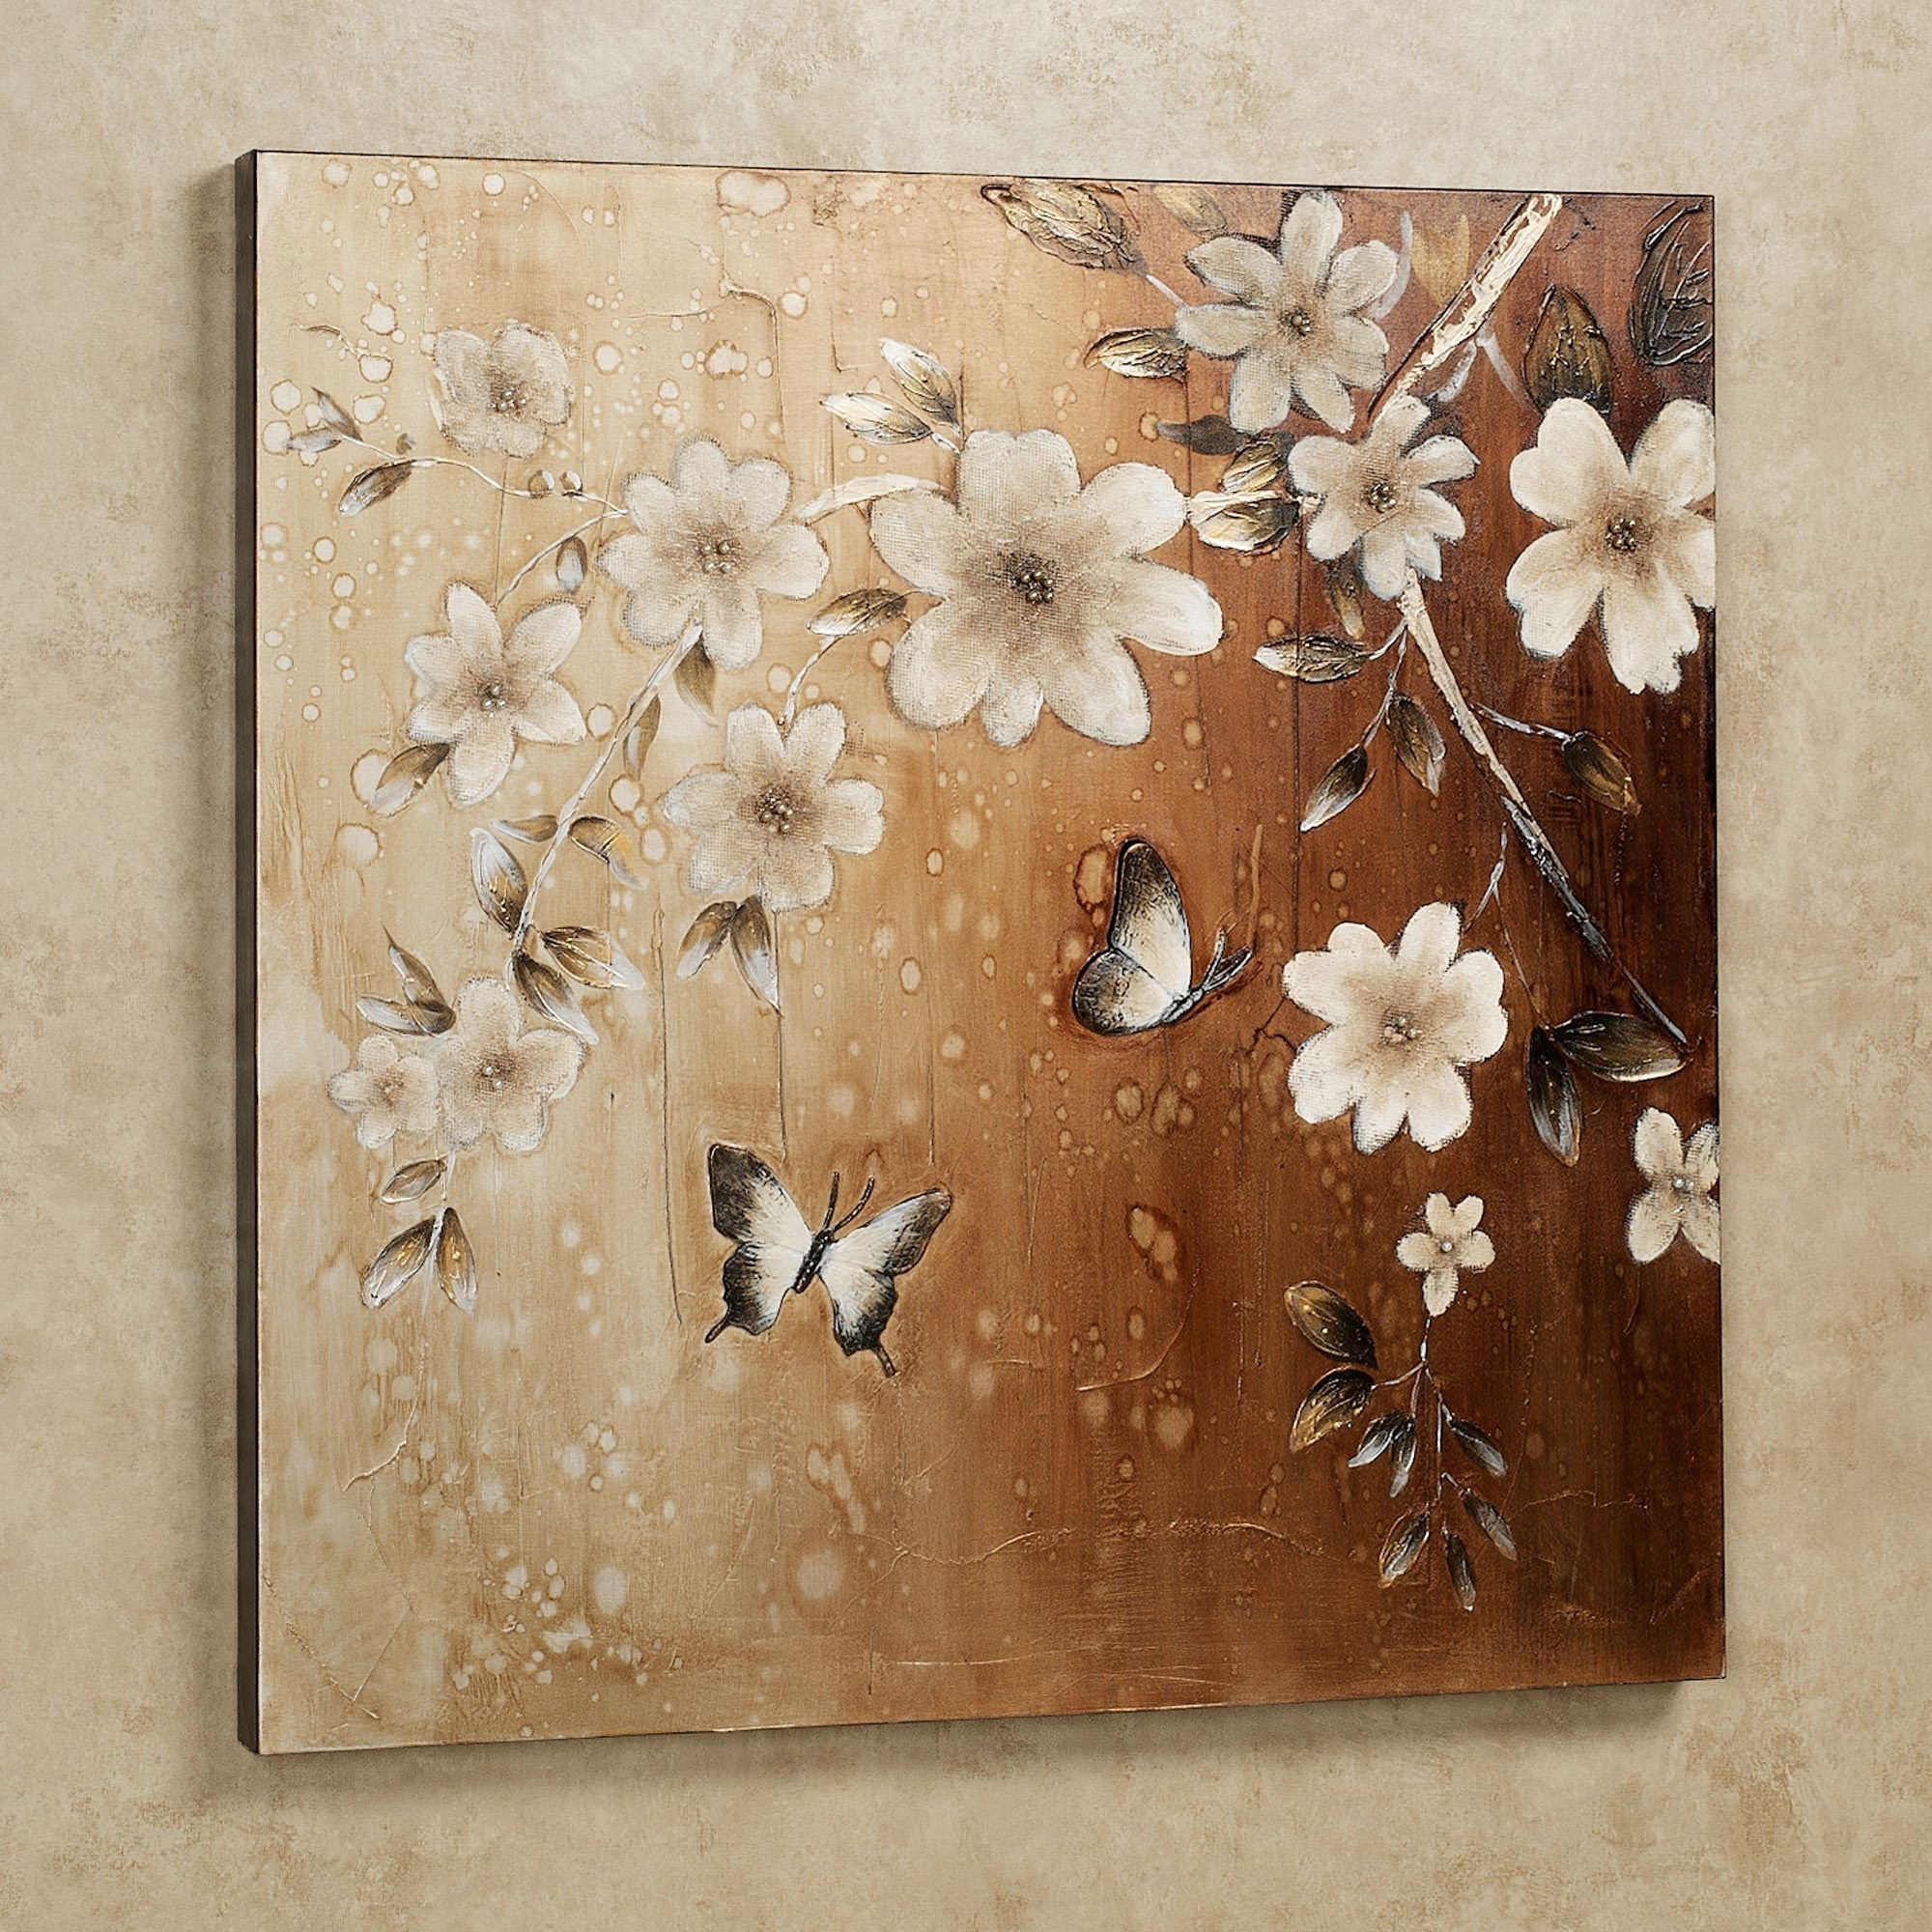 Wall Art Designs: Floral Canvas Wall Art Midday Sun Canvas Wall In Current Floral & Plant Wall Art (View 11 of 15)